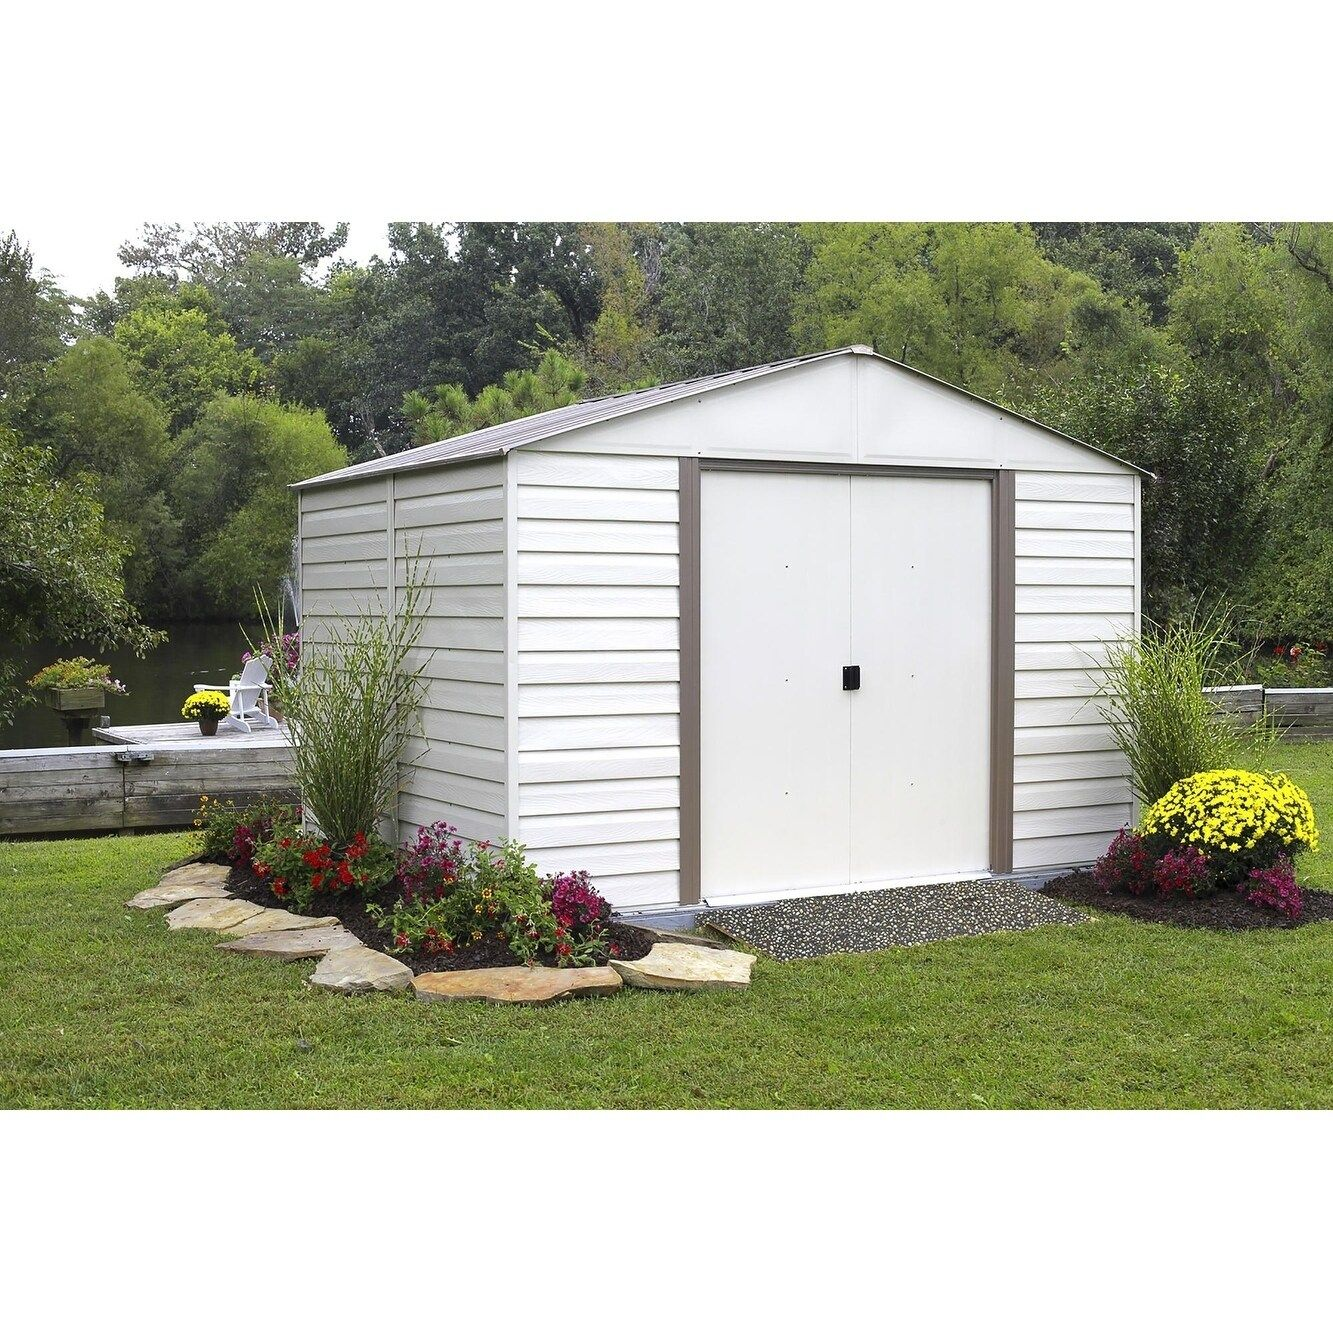 Milford 10ft X 12ft Vinyl Almond Gray Bark Door W55 5in X H64 5in Walmart Com In 2020 Insulating A Shed Metal Shed Shed Landscaping